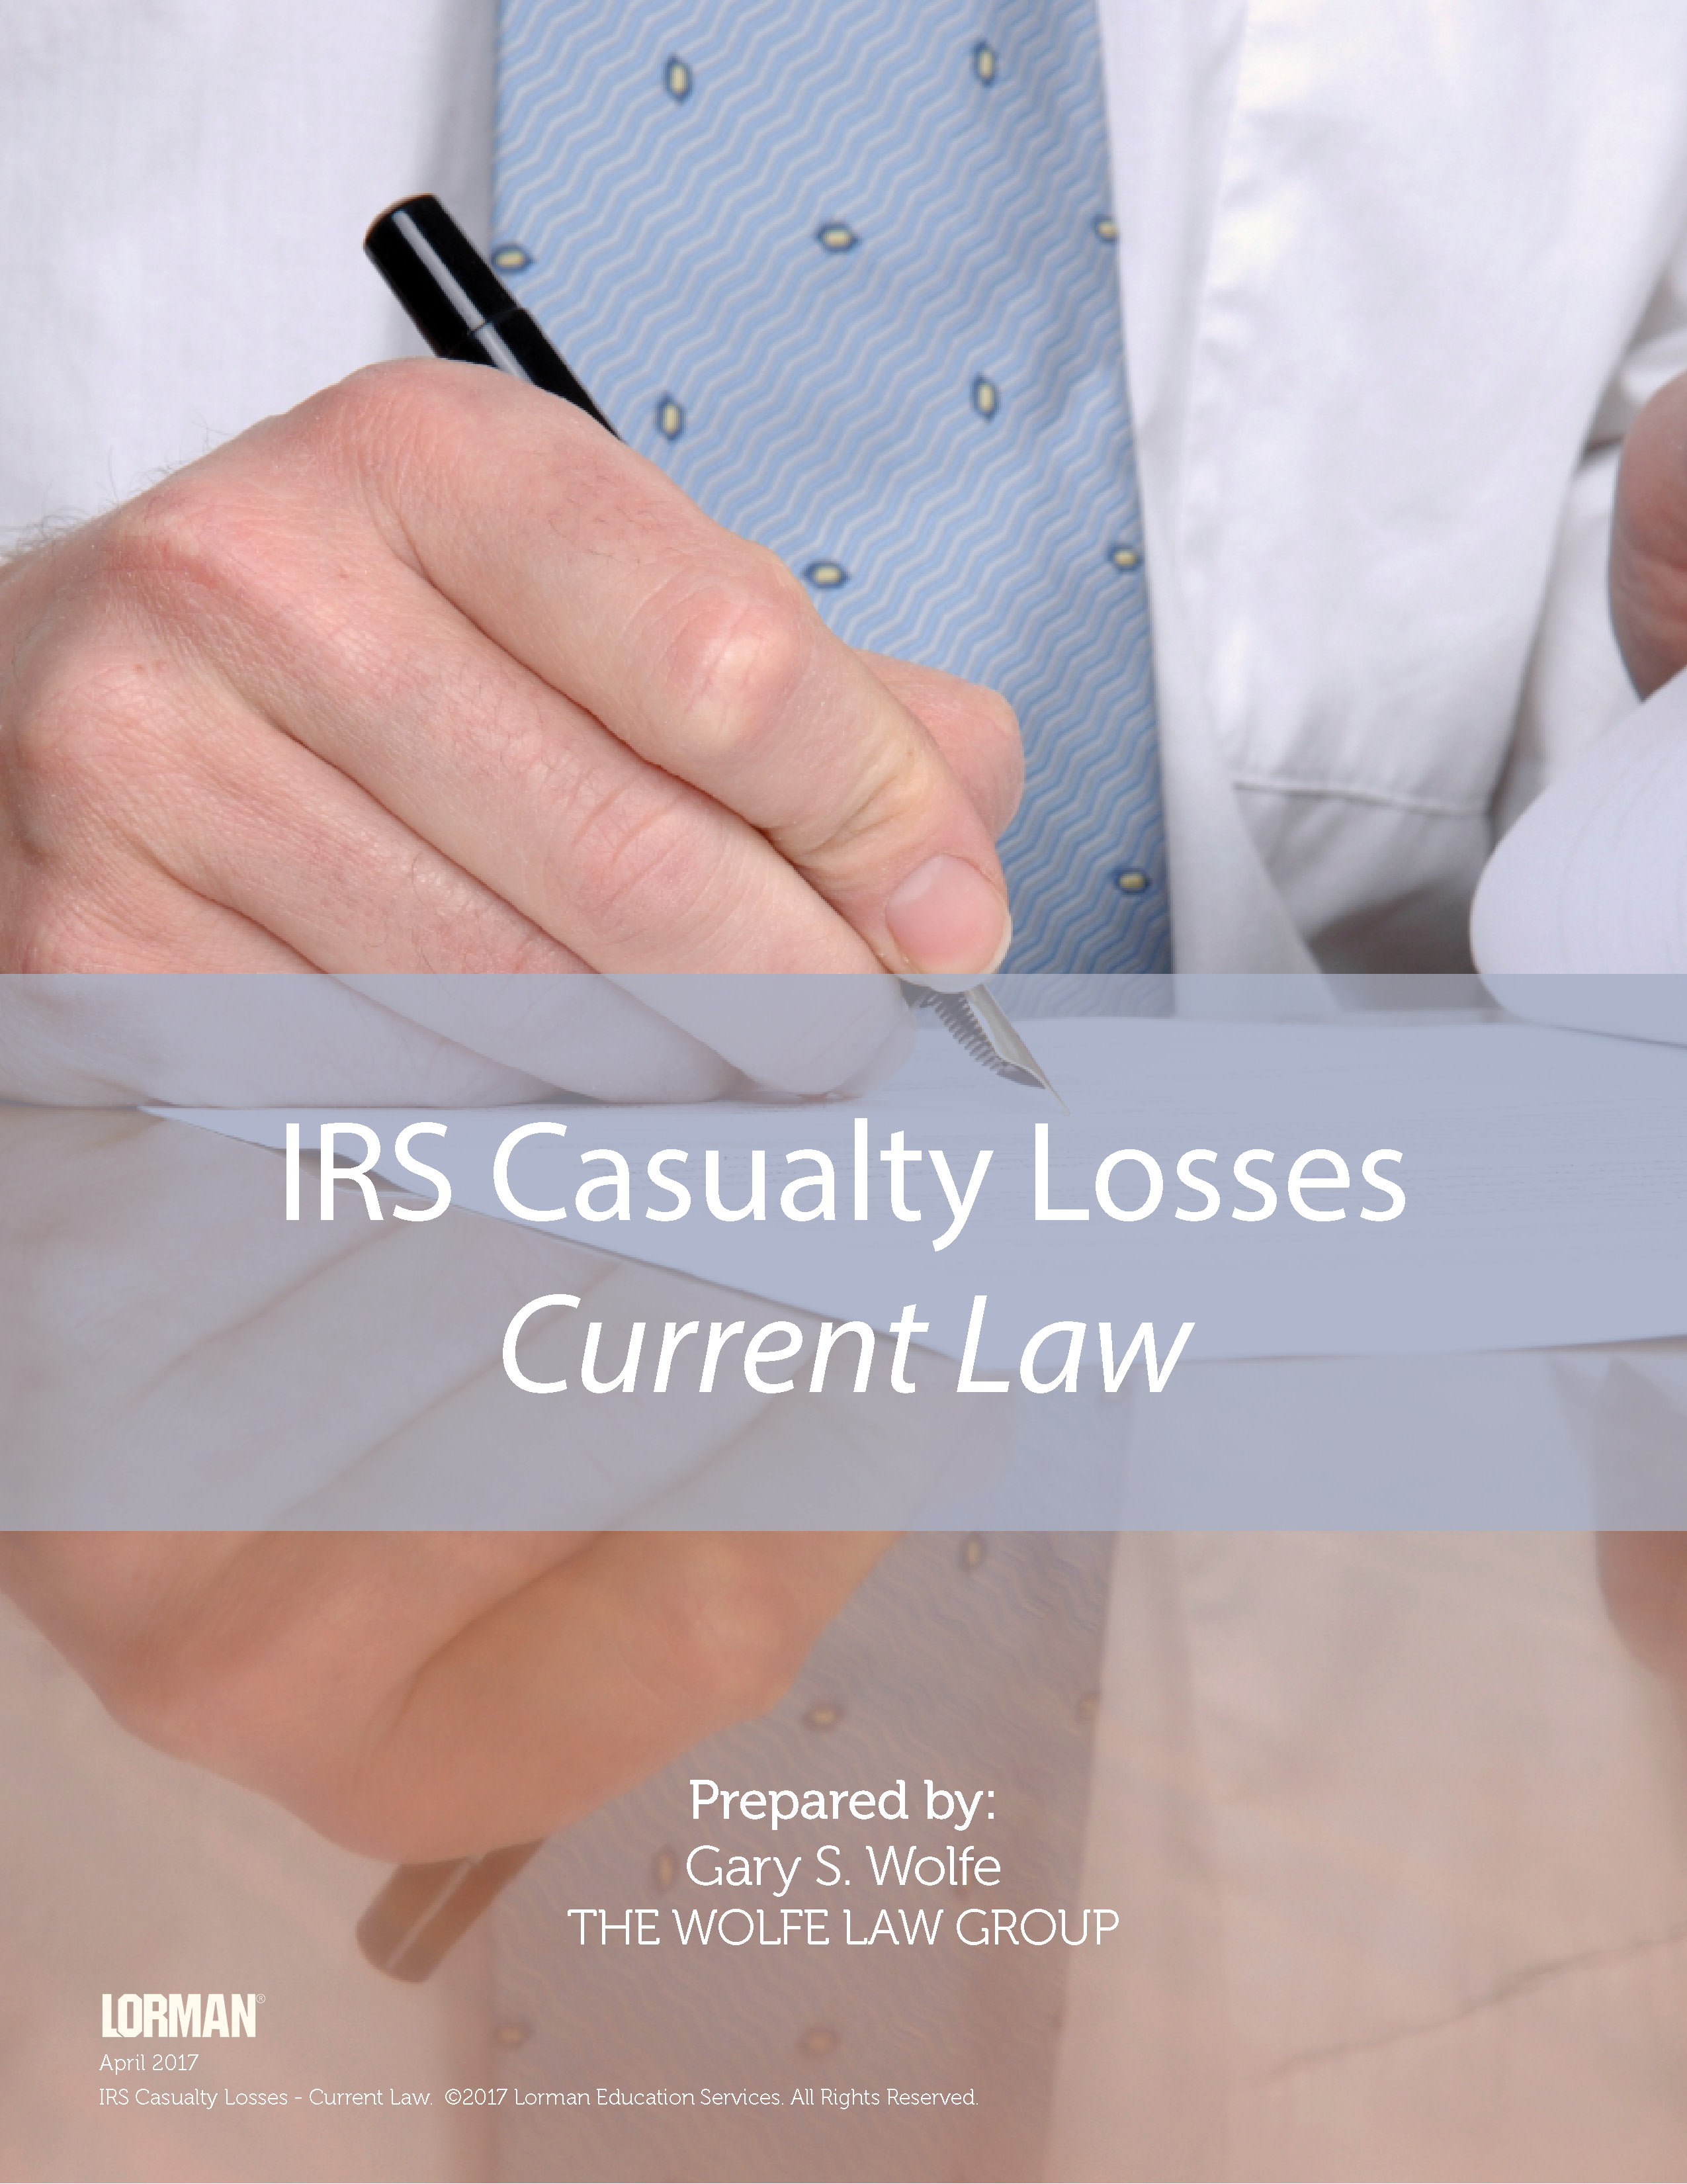 IRS Casualty Losses - Current Law